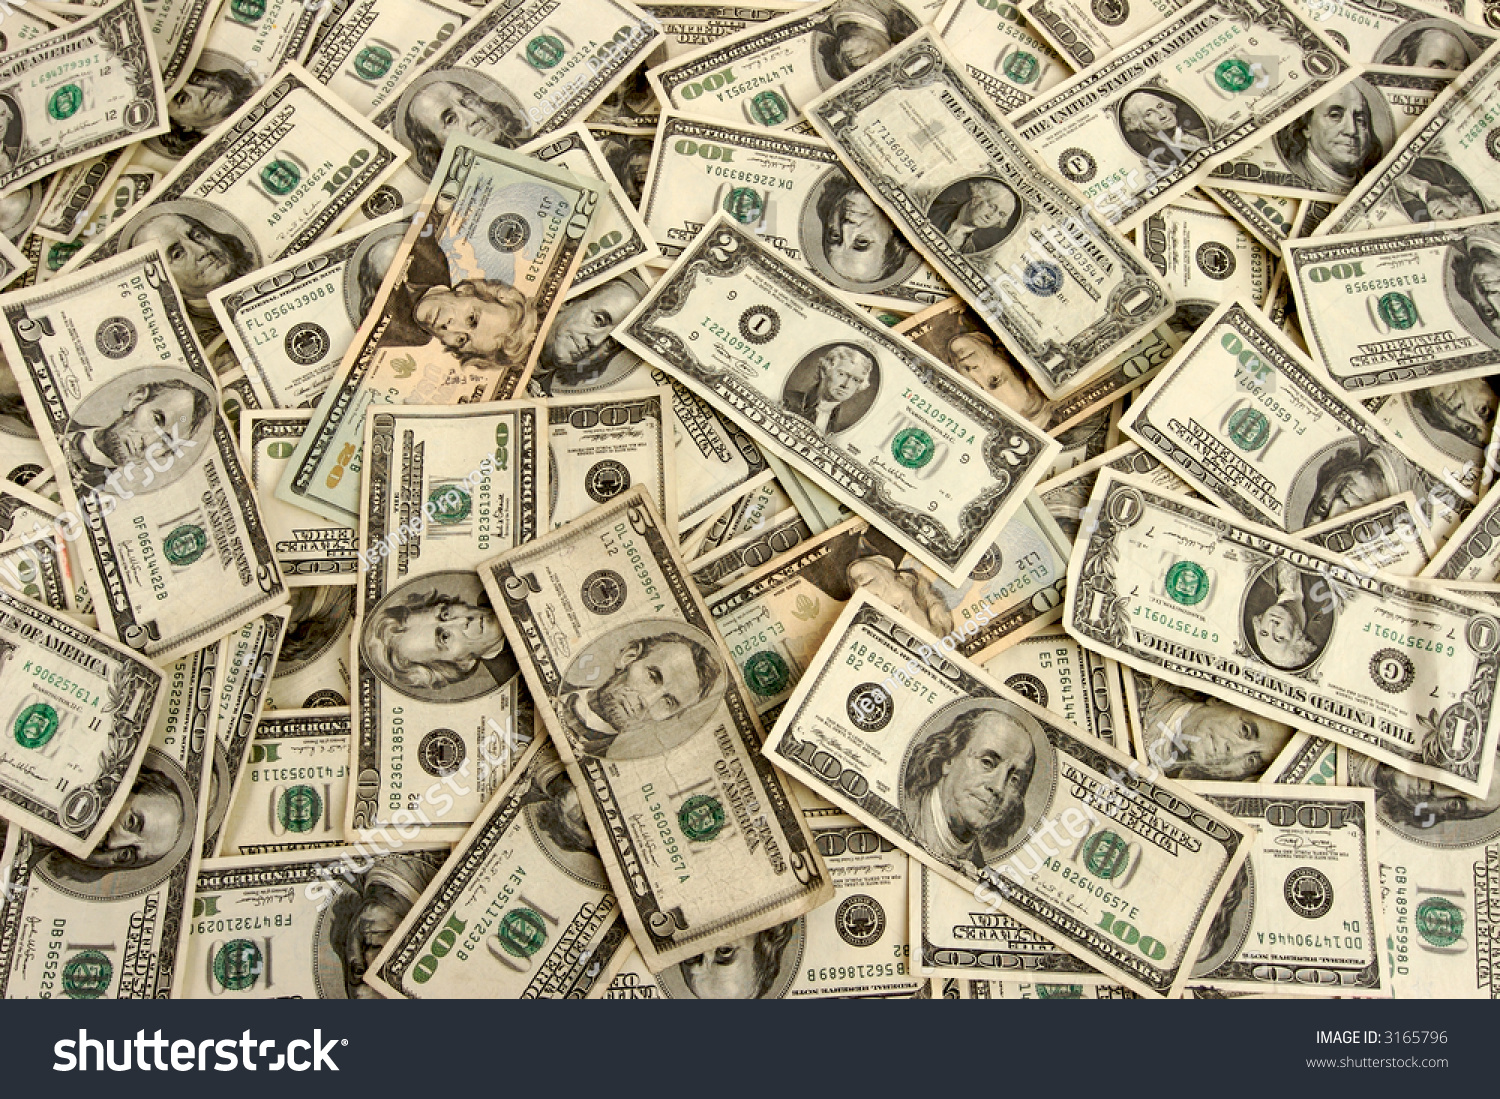 American Currency Cash Lots Real Money Stock Photo 3165796 ...